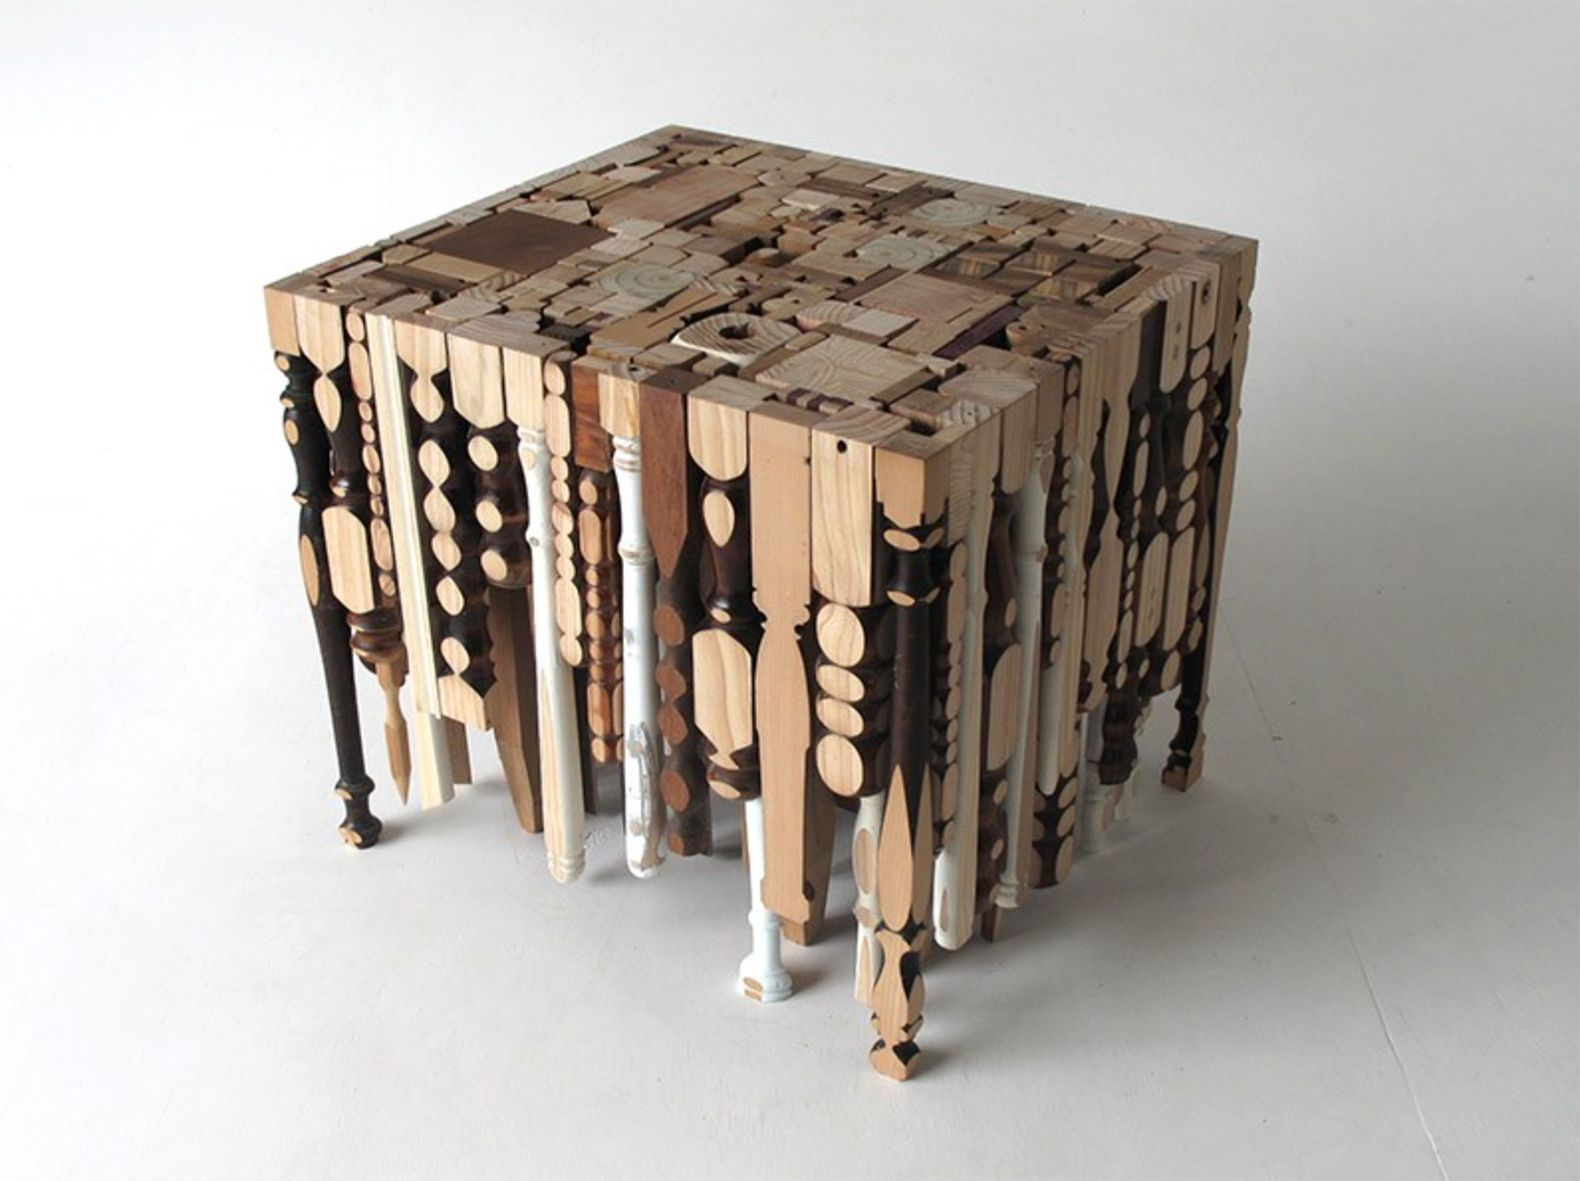 Eking it out table is made out of recycled table legs What are chairs made of